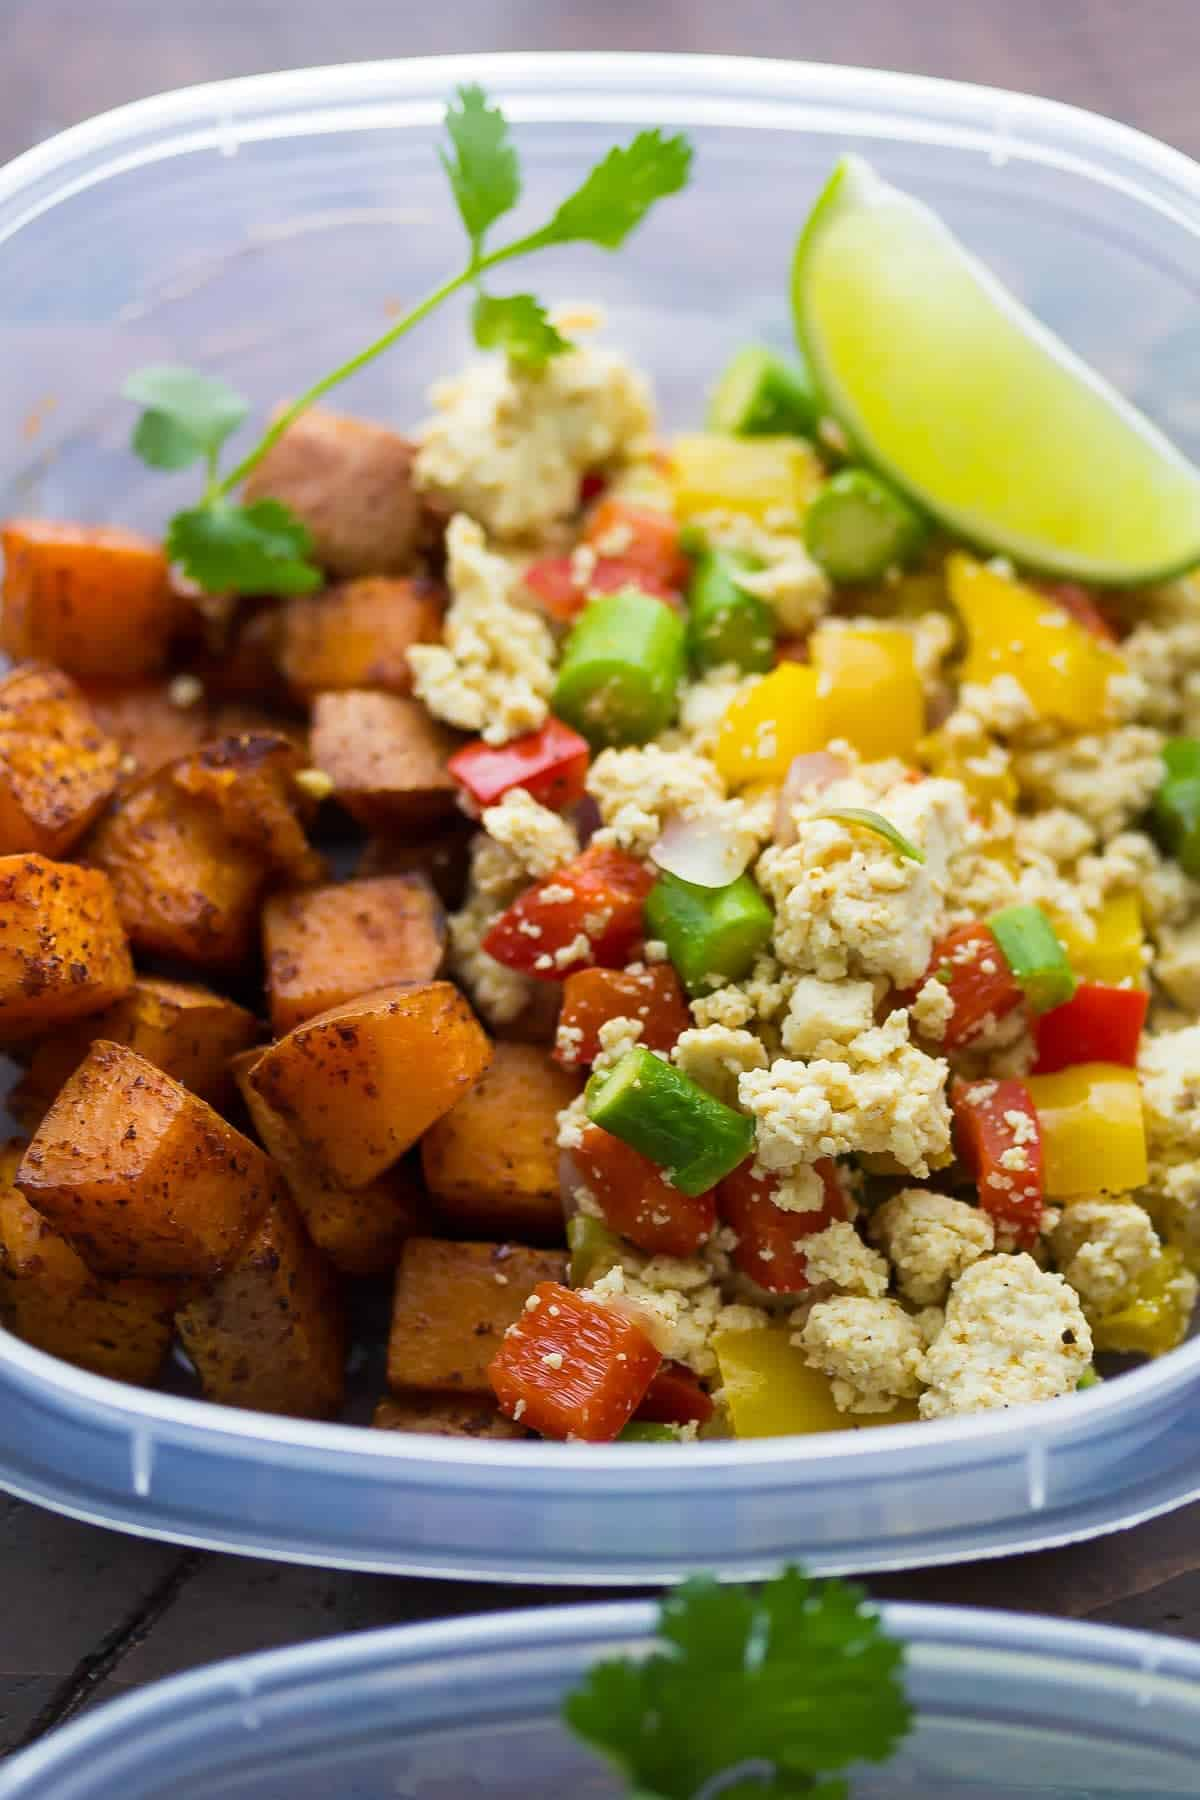 Tofu Scramble & Breakfast Sweet Potatoes (Make Ahead)